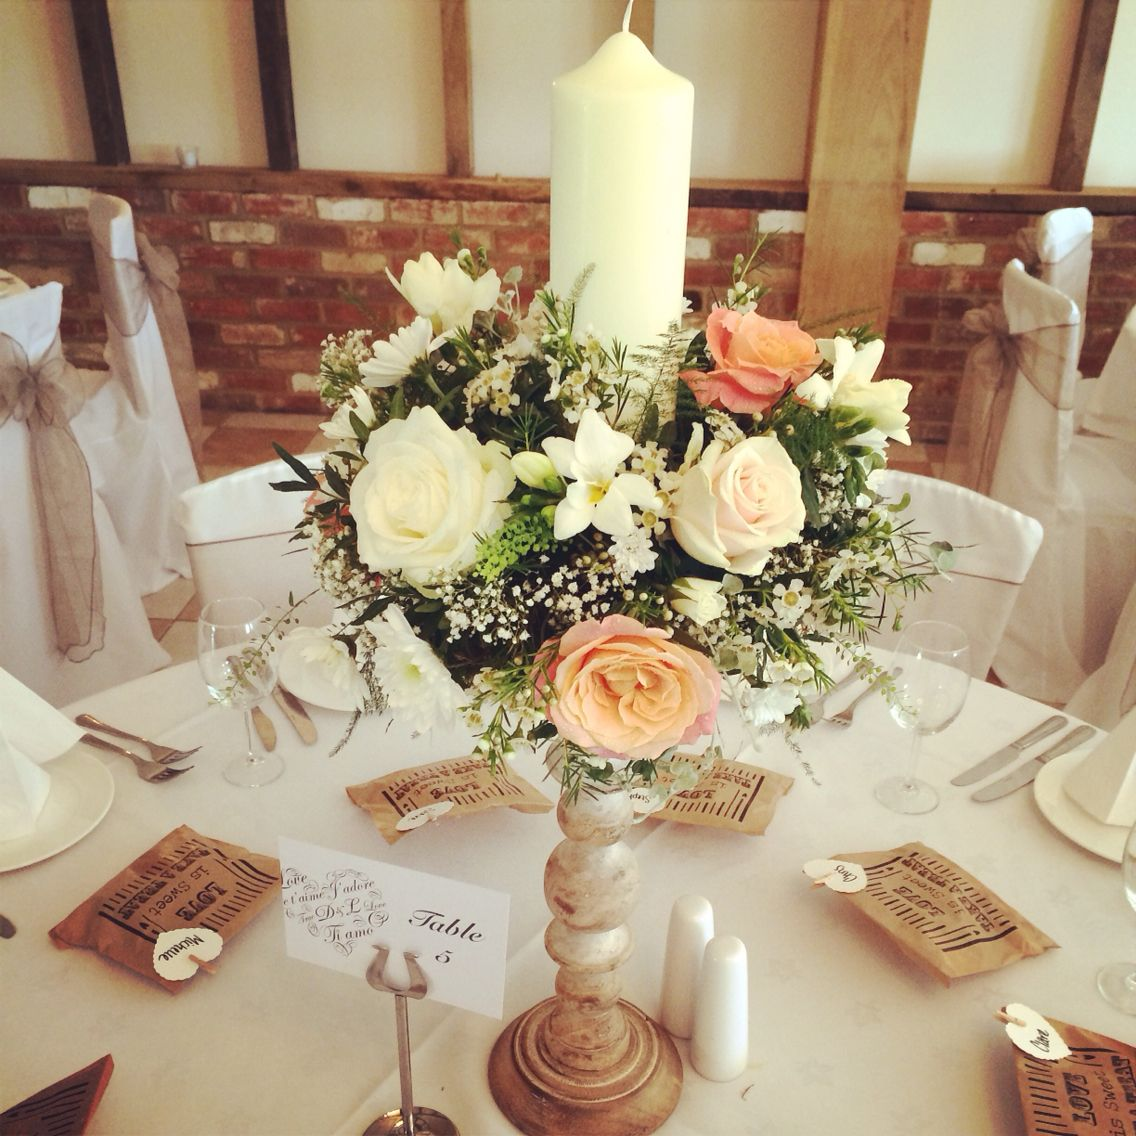 Wooden Candlestick With Coral Peach And Cream Flowers Roses Hydrangea Candles Gypsophila